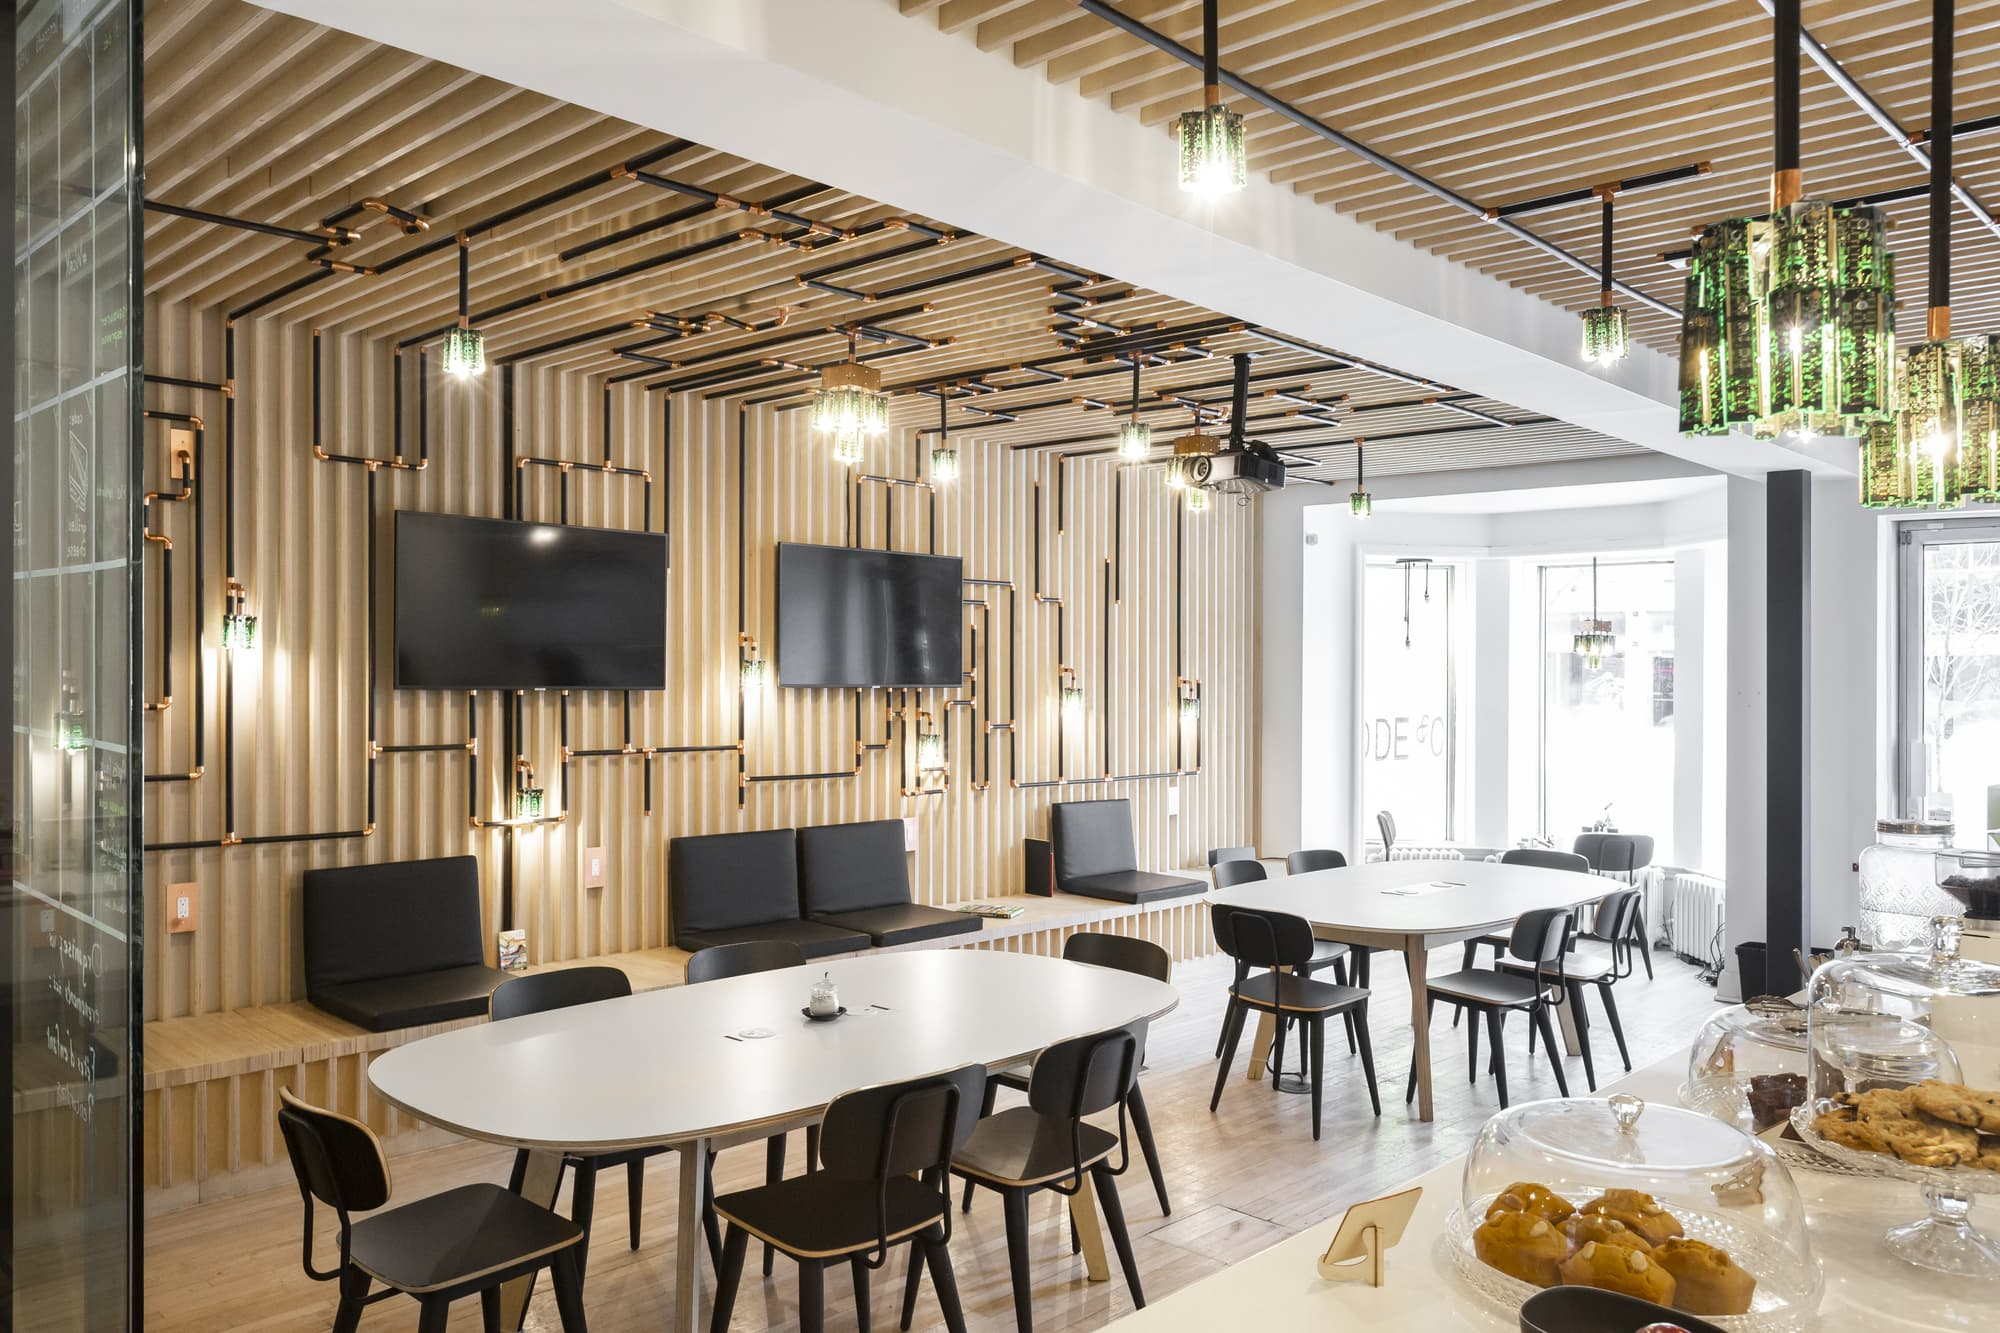 design commercial - coffee shop with white tables, black chairs and televisions